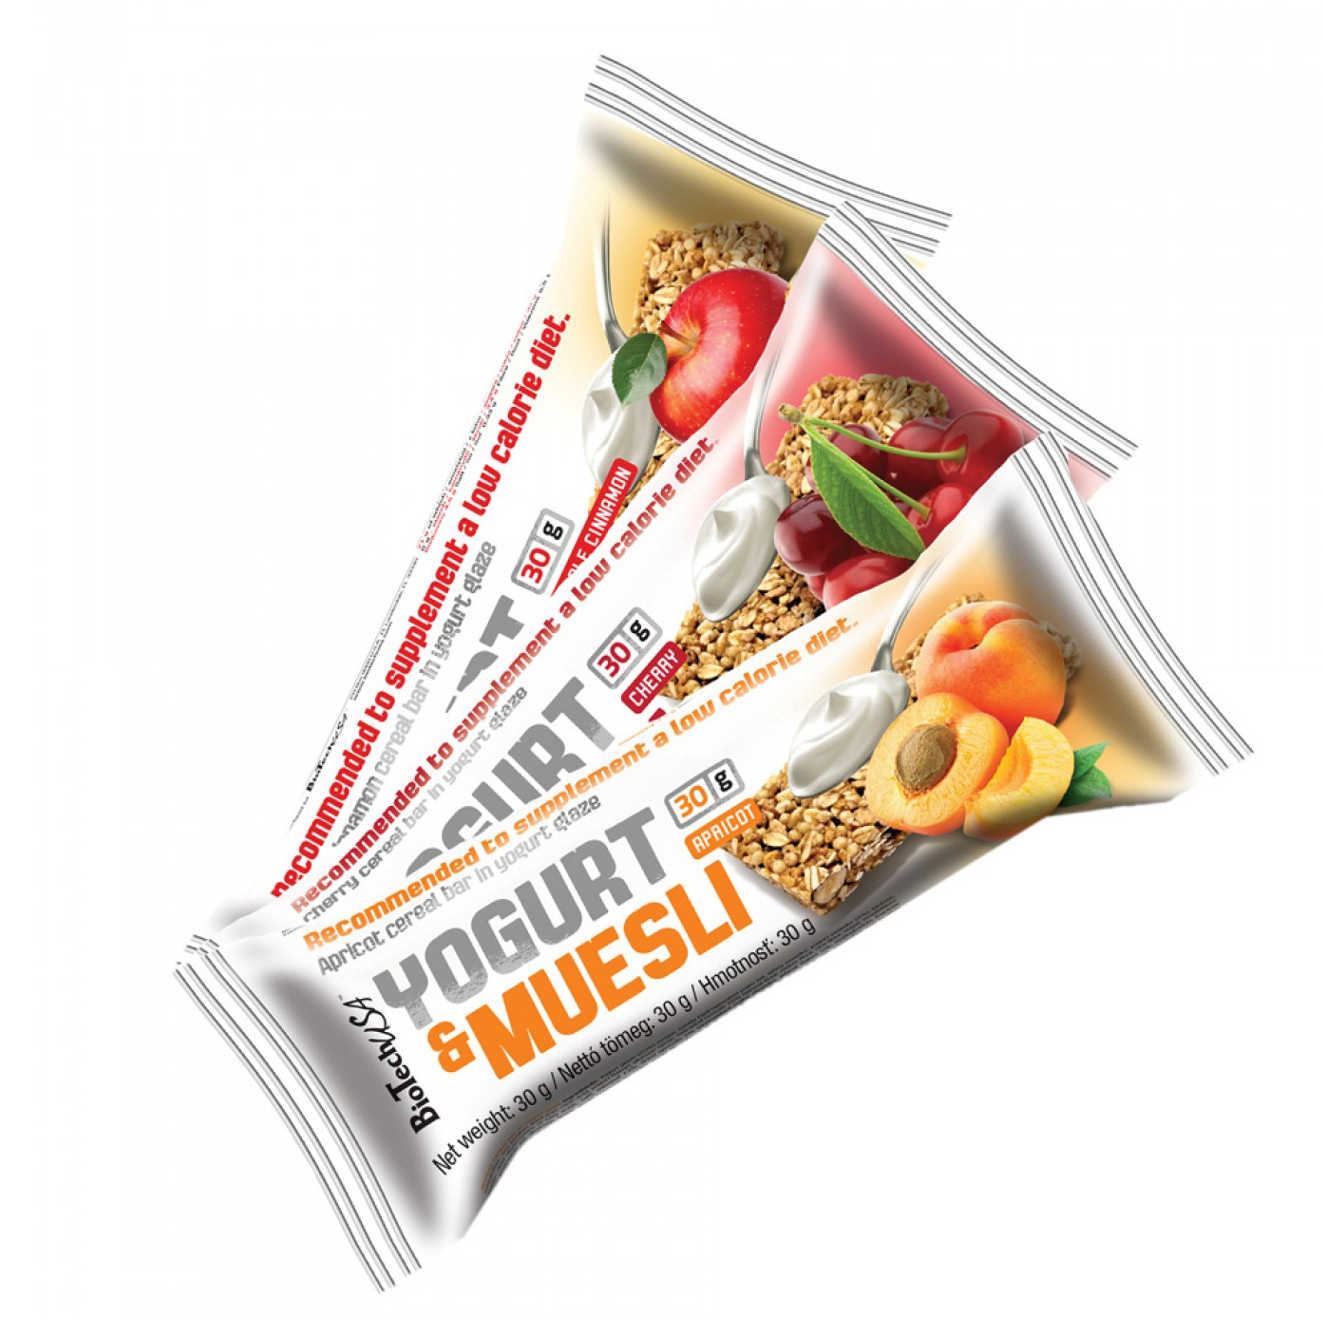 YOGURT & MUESLI BAR - 30g - BioTechUSA